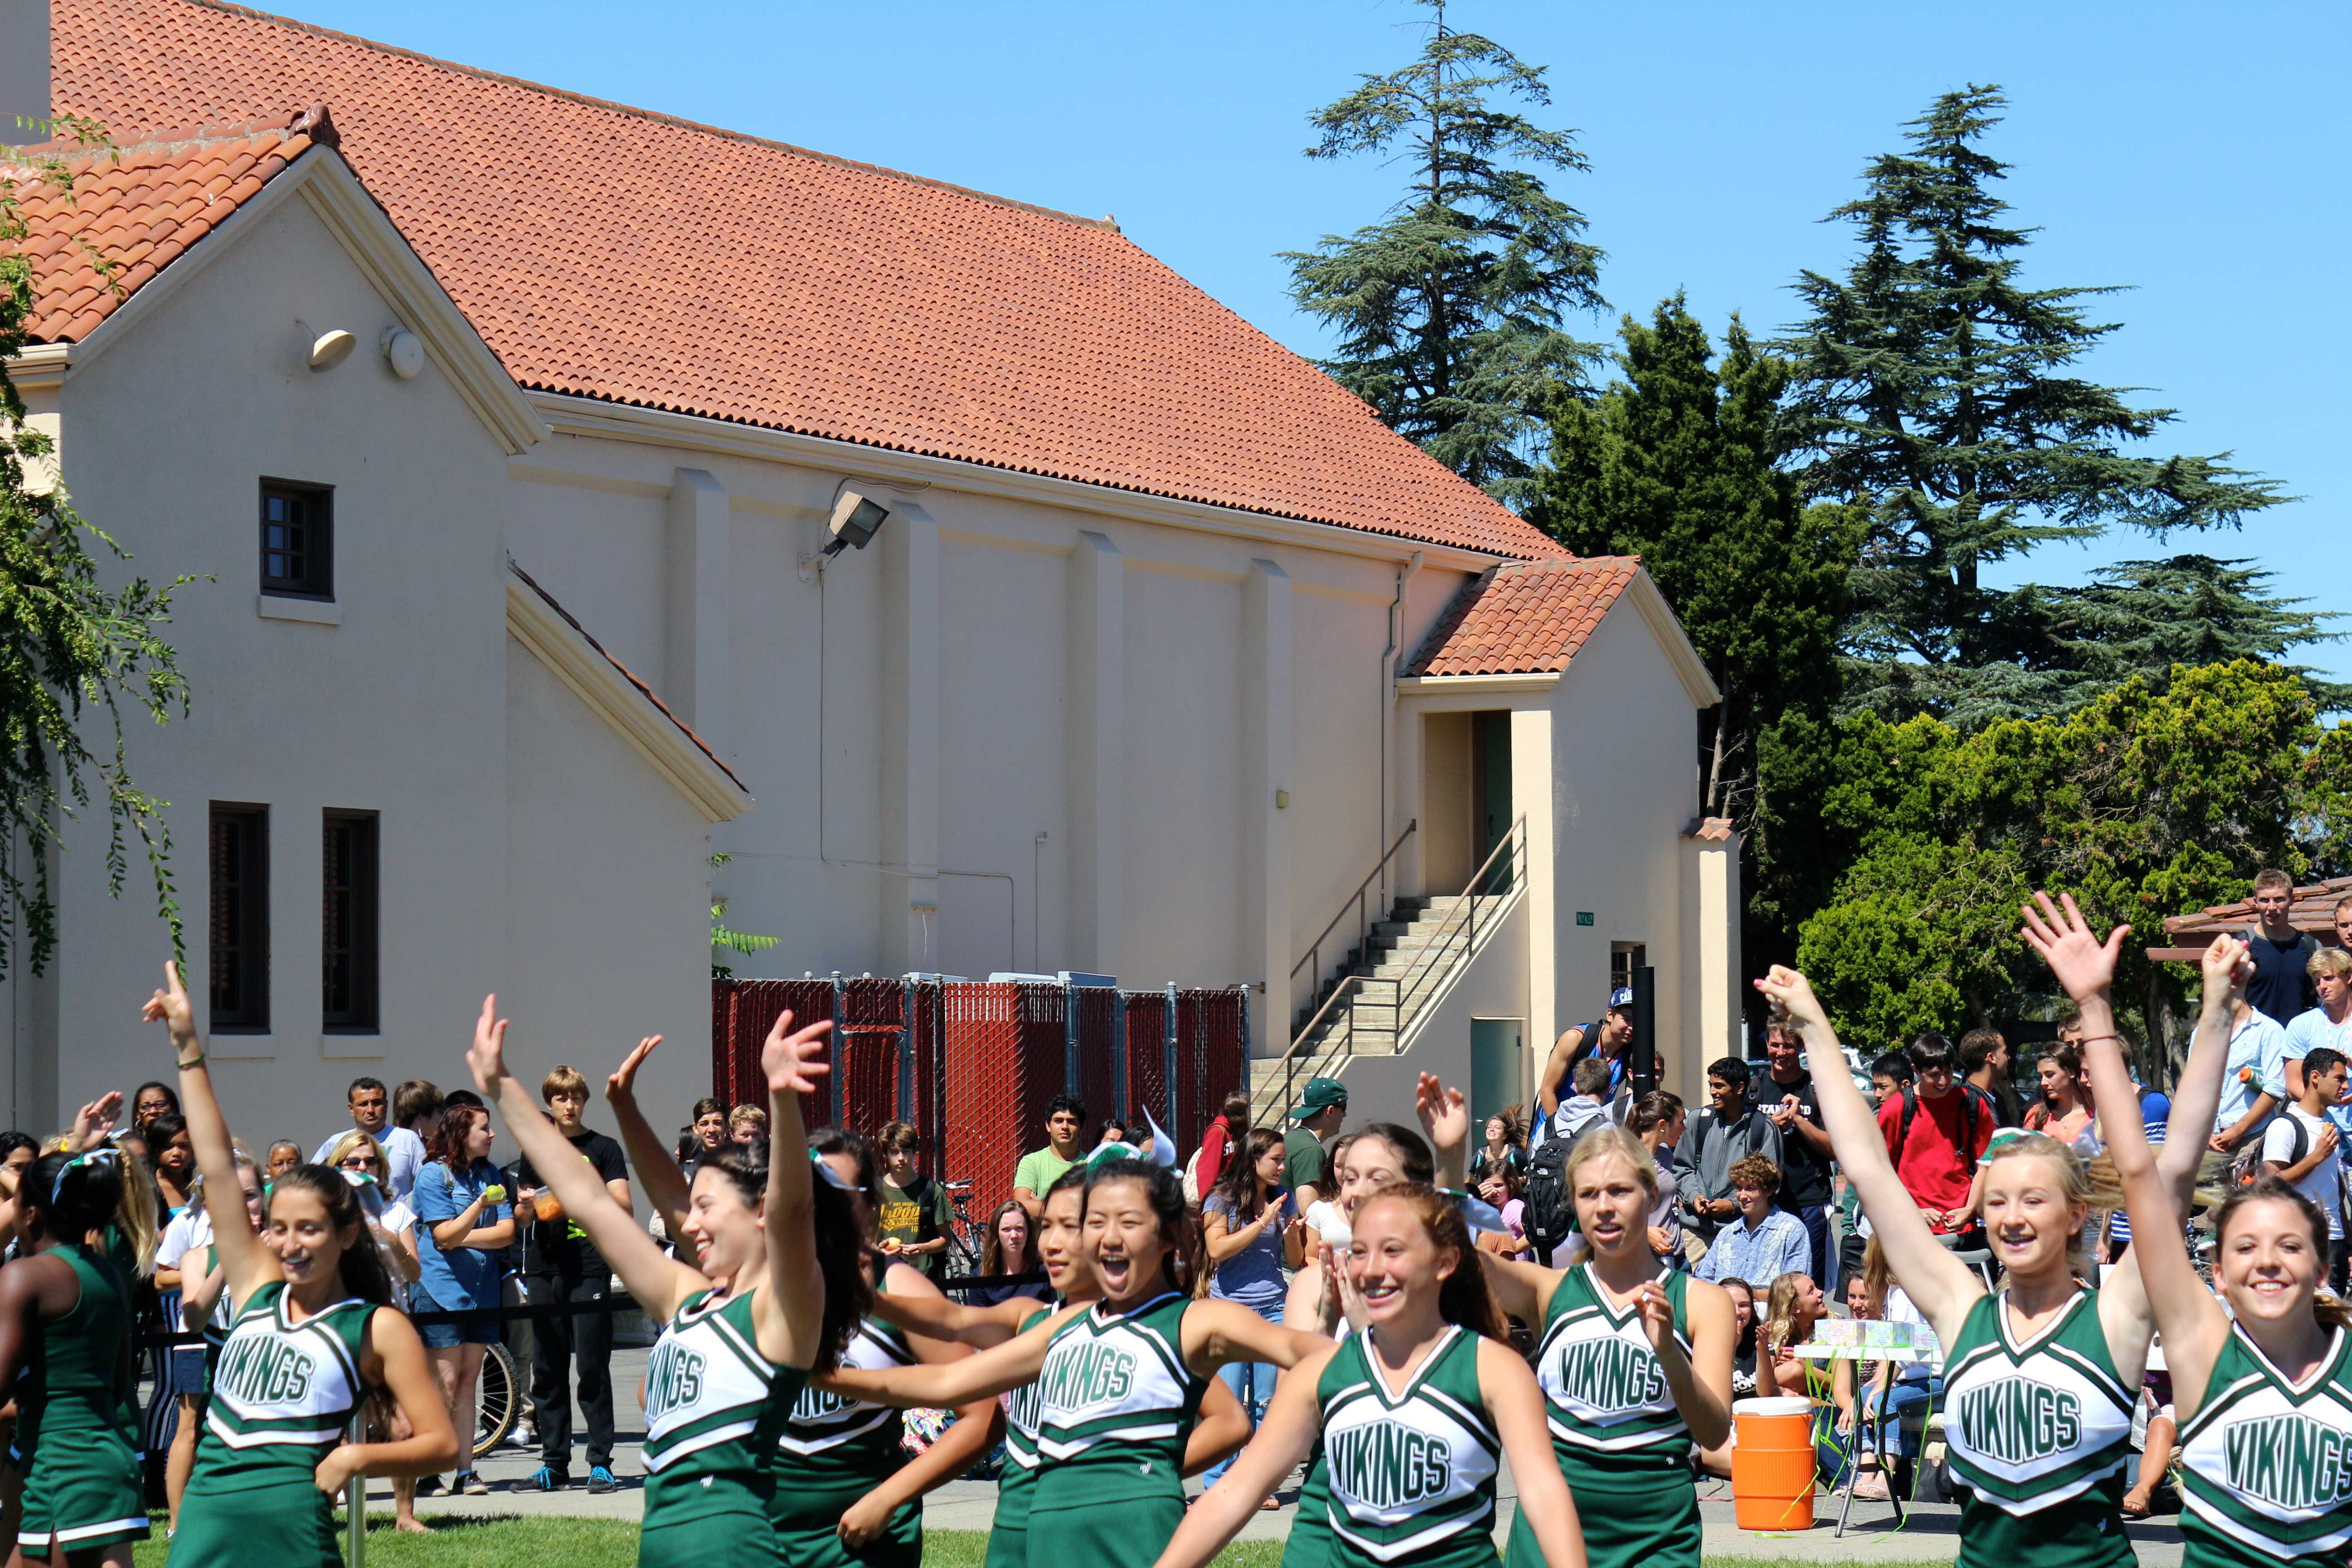 Cheerleaders wave to the gathered students. Photo by Frankie Comey